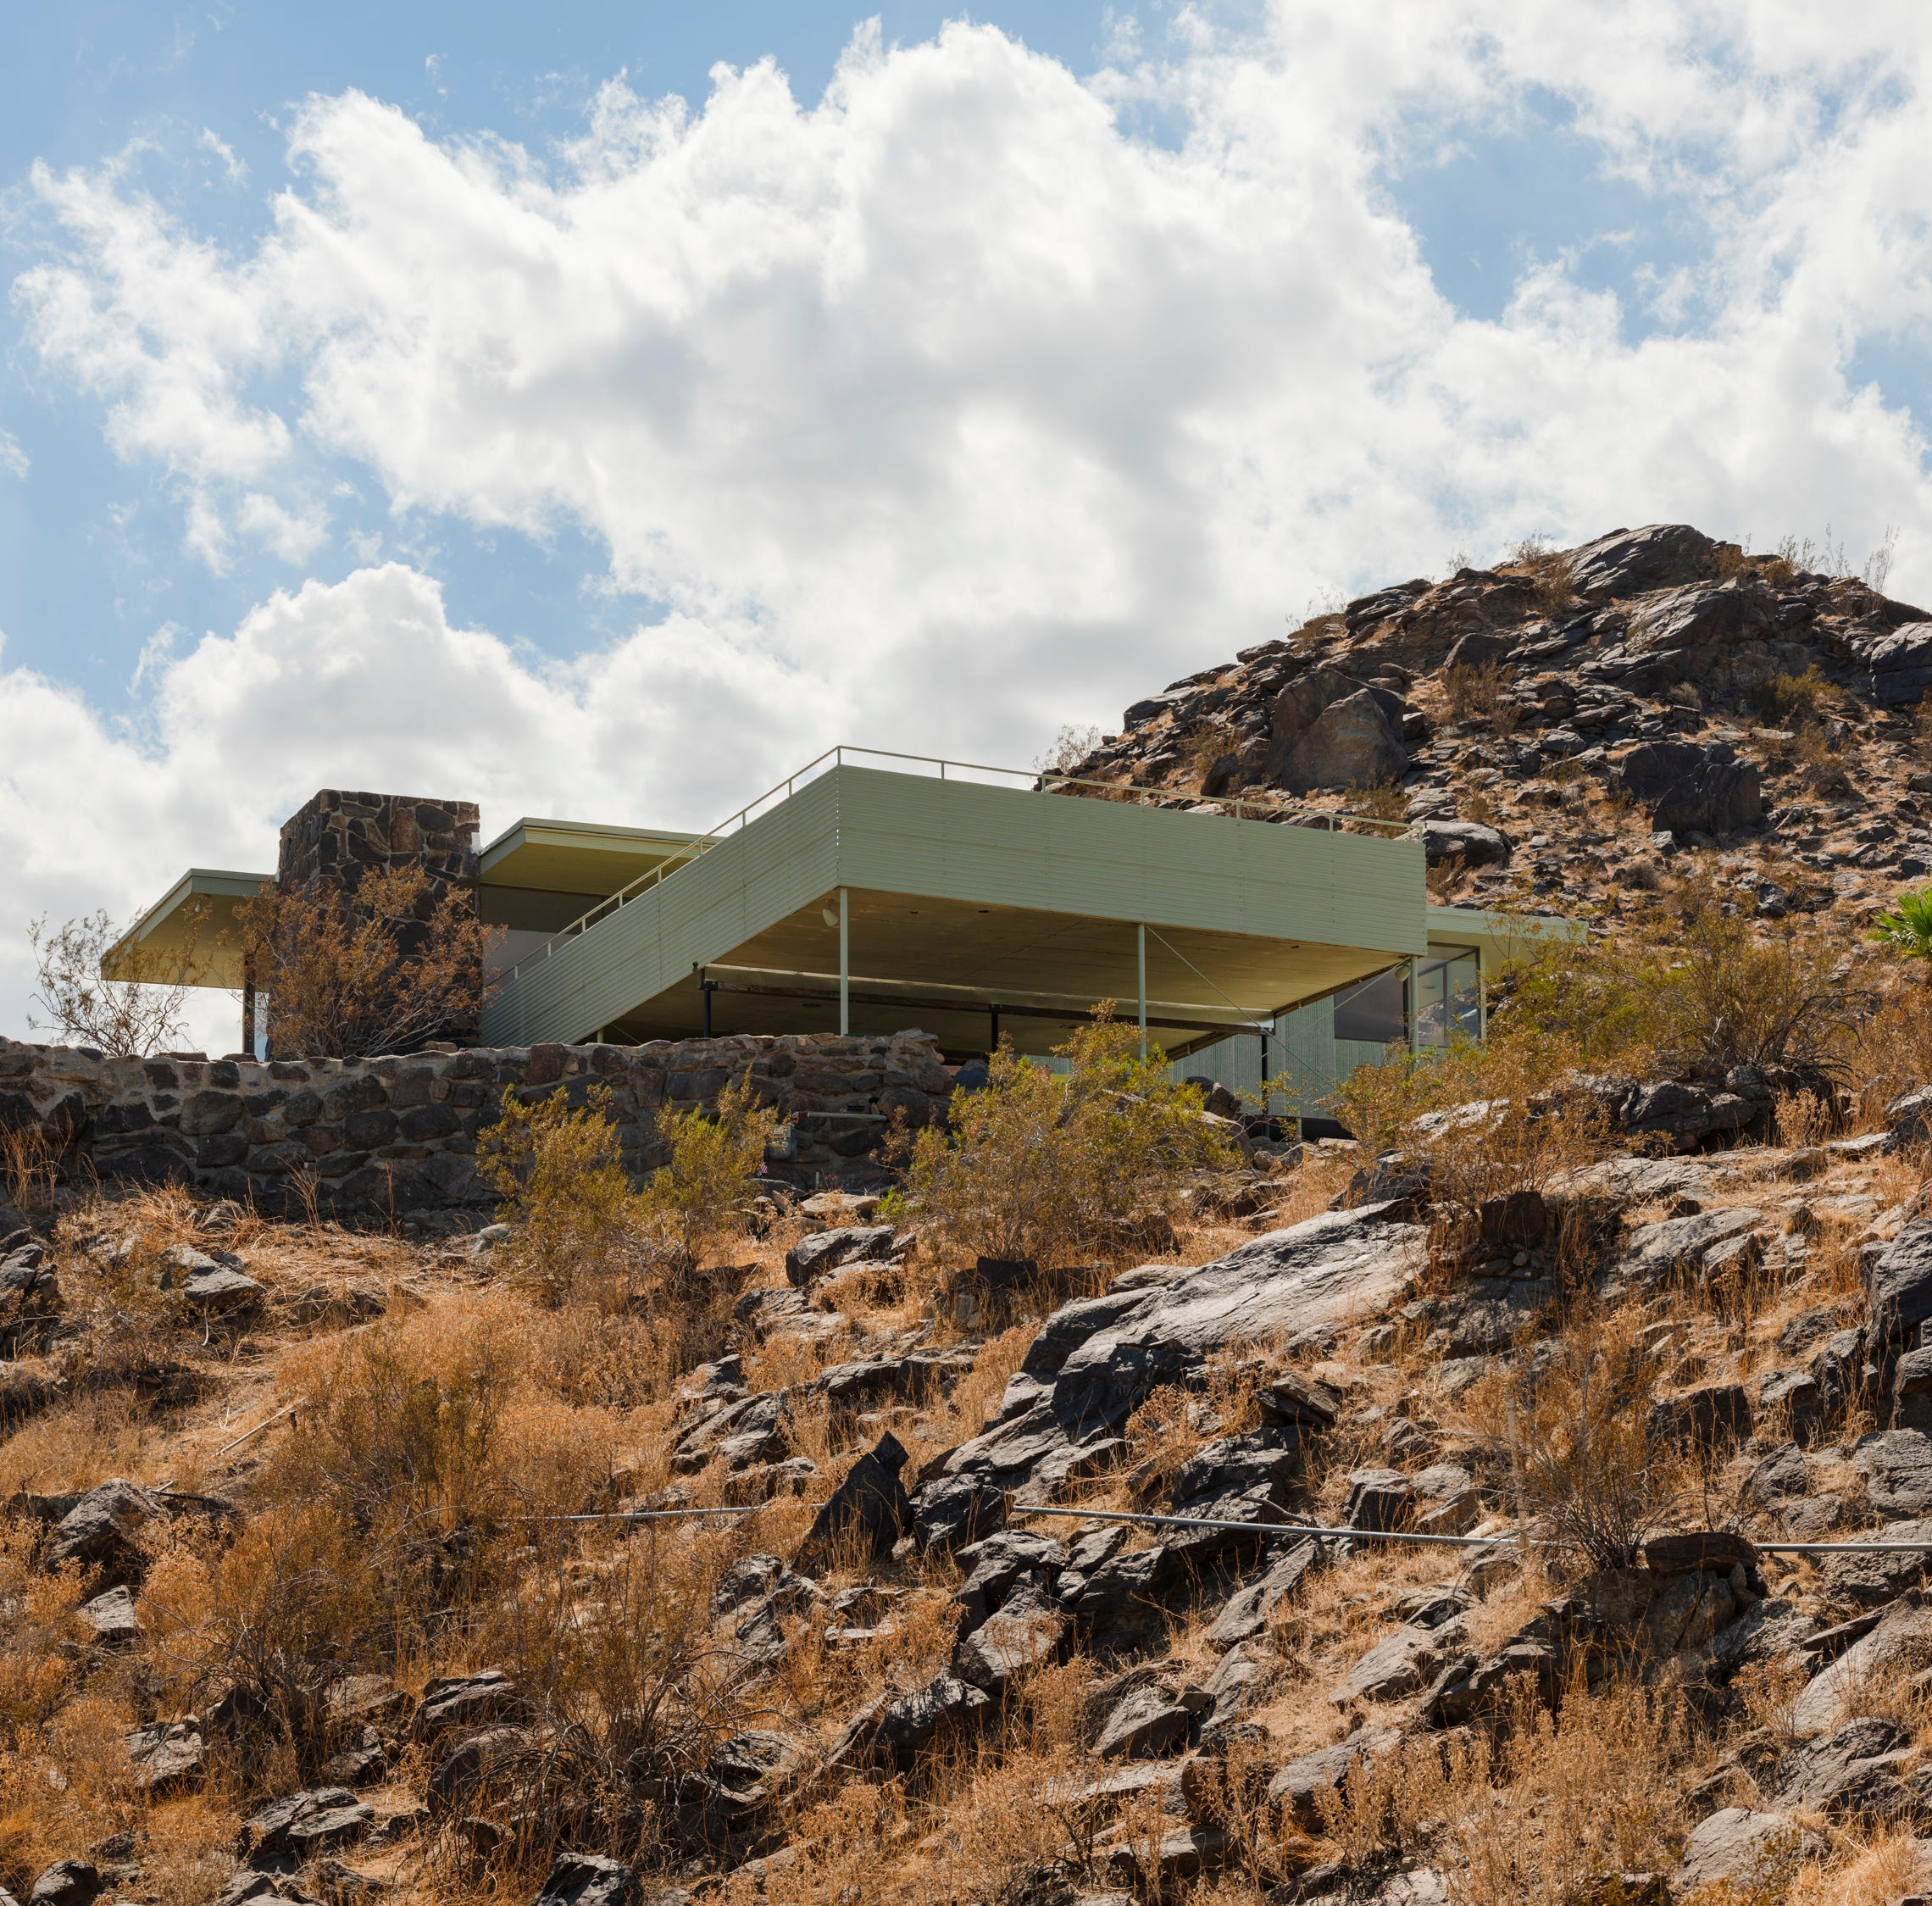 If you didn't get a peek at this Albert Frey home during Modernism Week, it's now on the market for $2.5 million